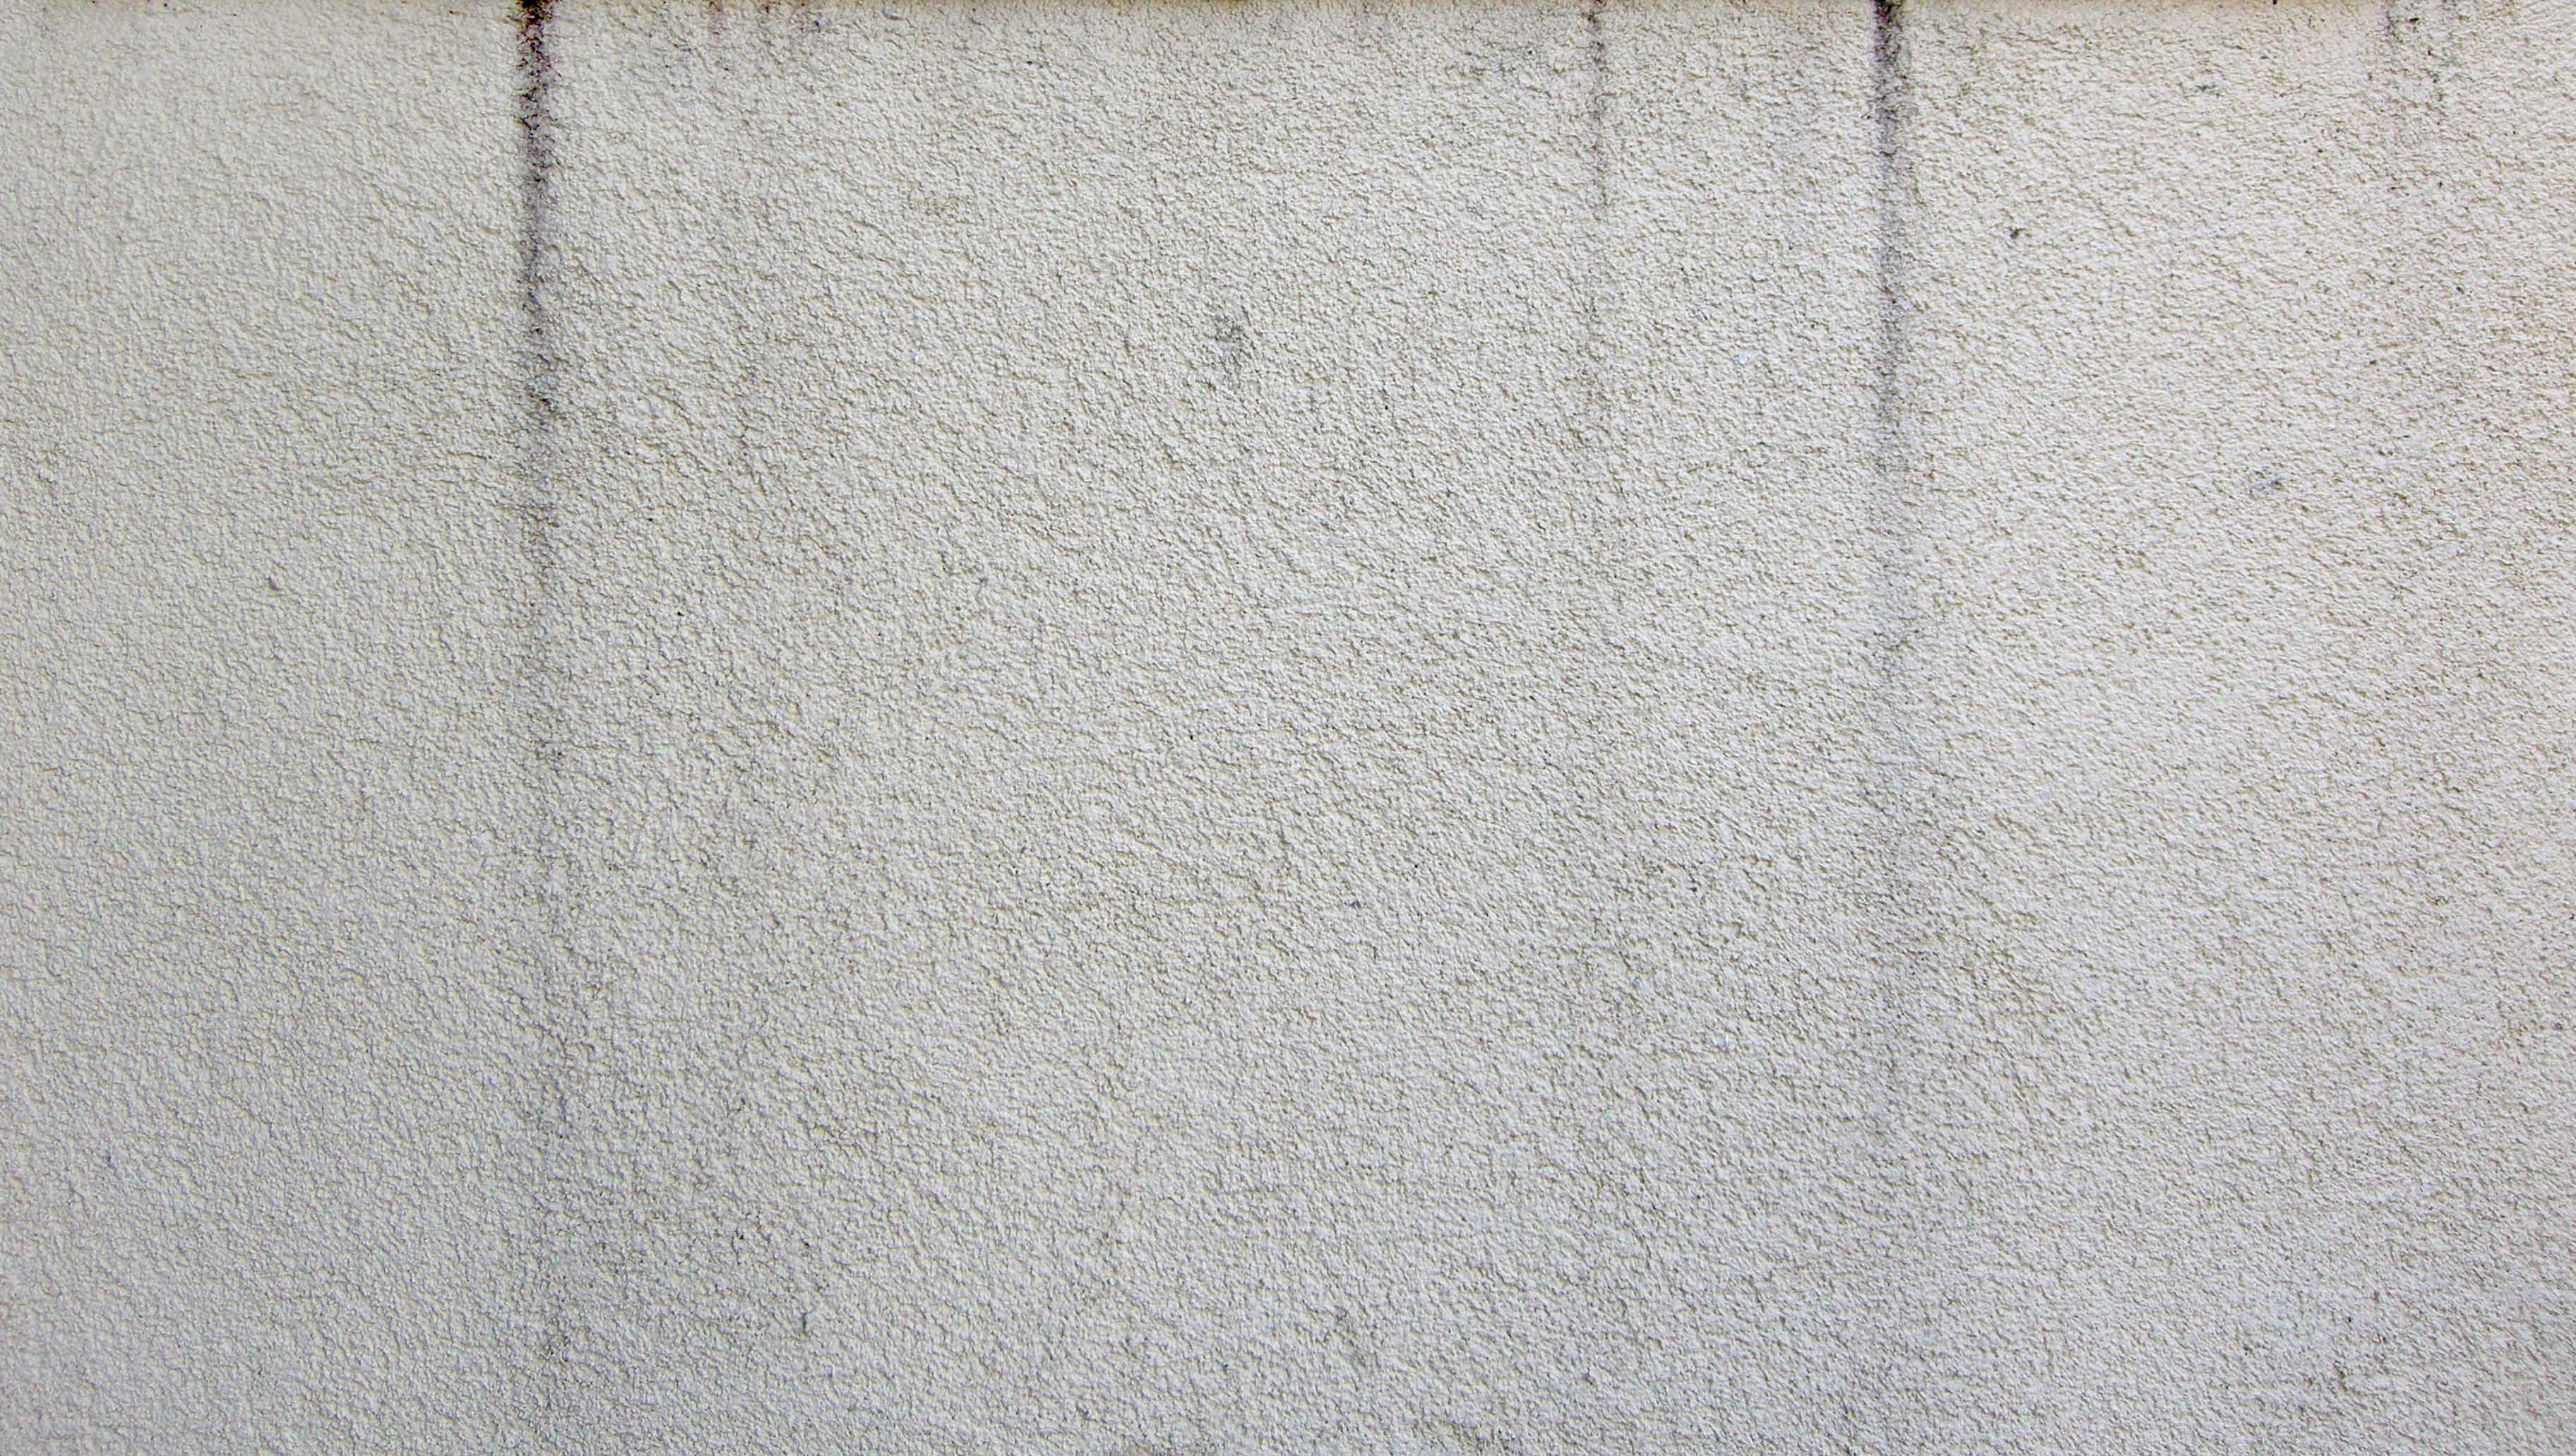 28955261 Concrete Or Cement Wall Background And Texture For | HOME ...